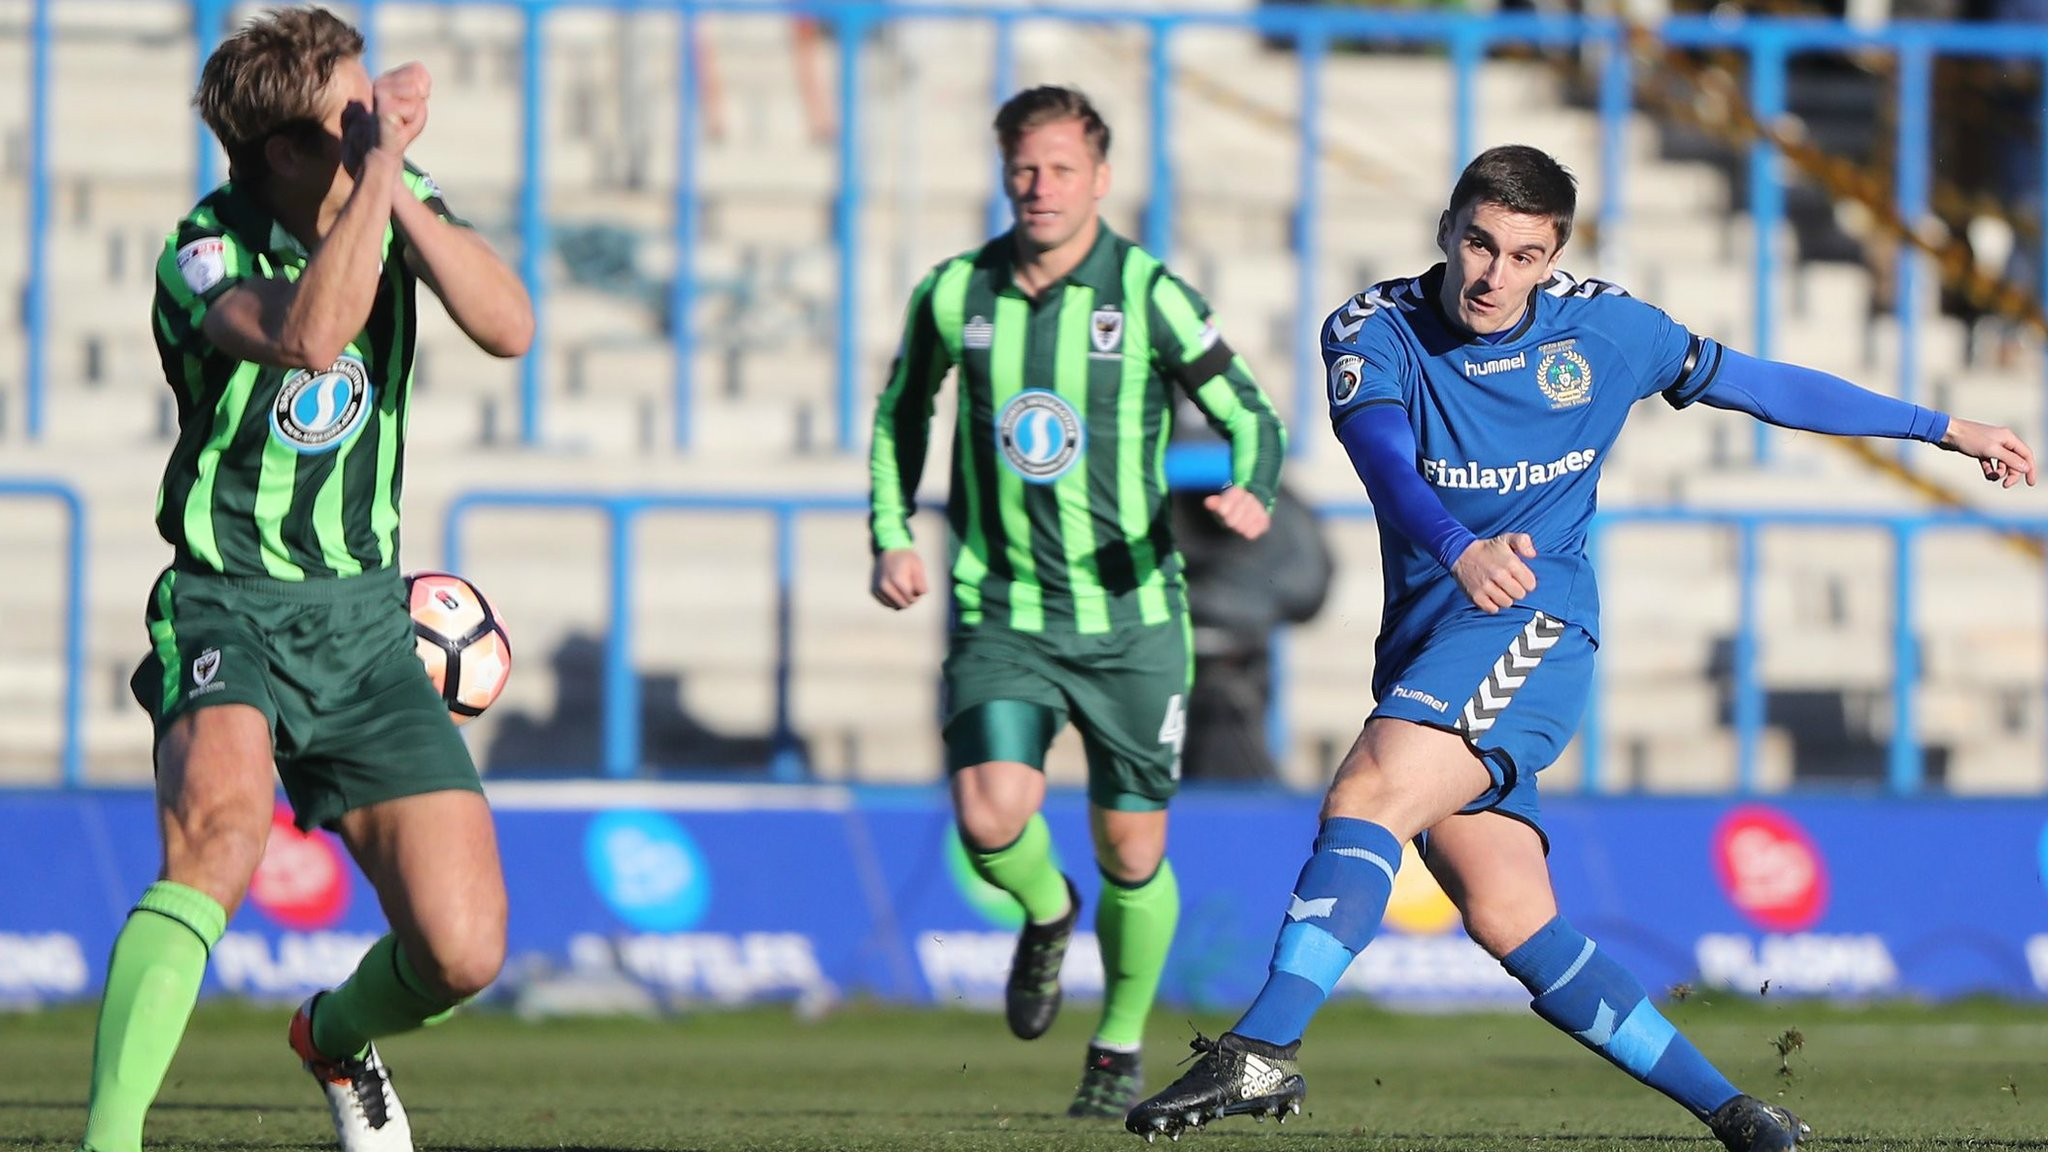 FA Cup: Adam Morgan's strike for Curzon Ashton voted goal of second round